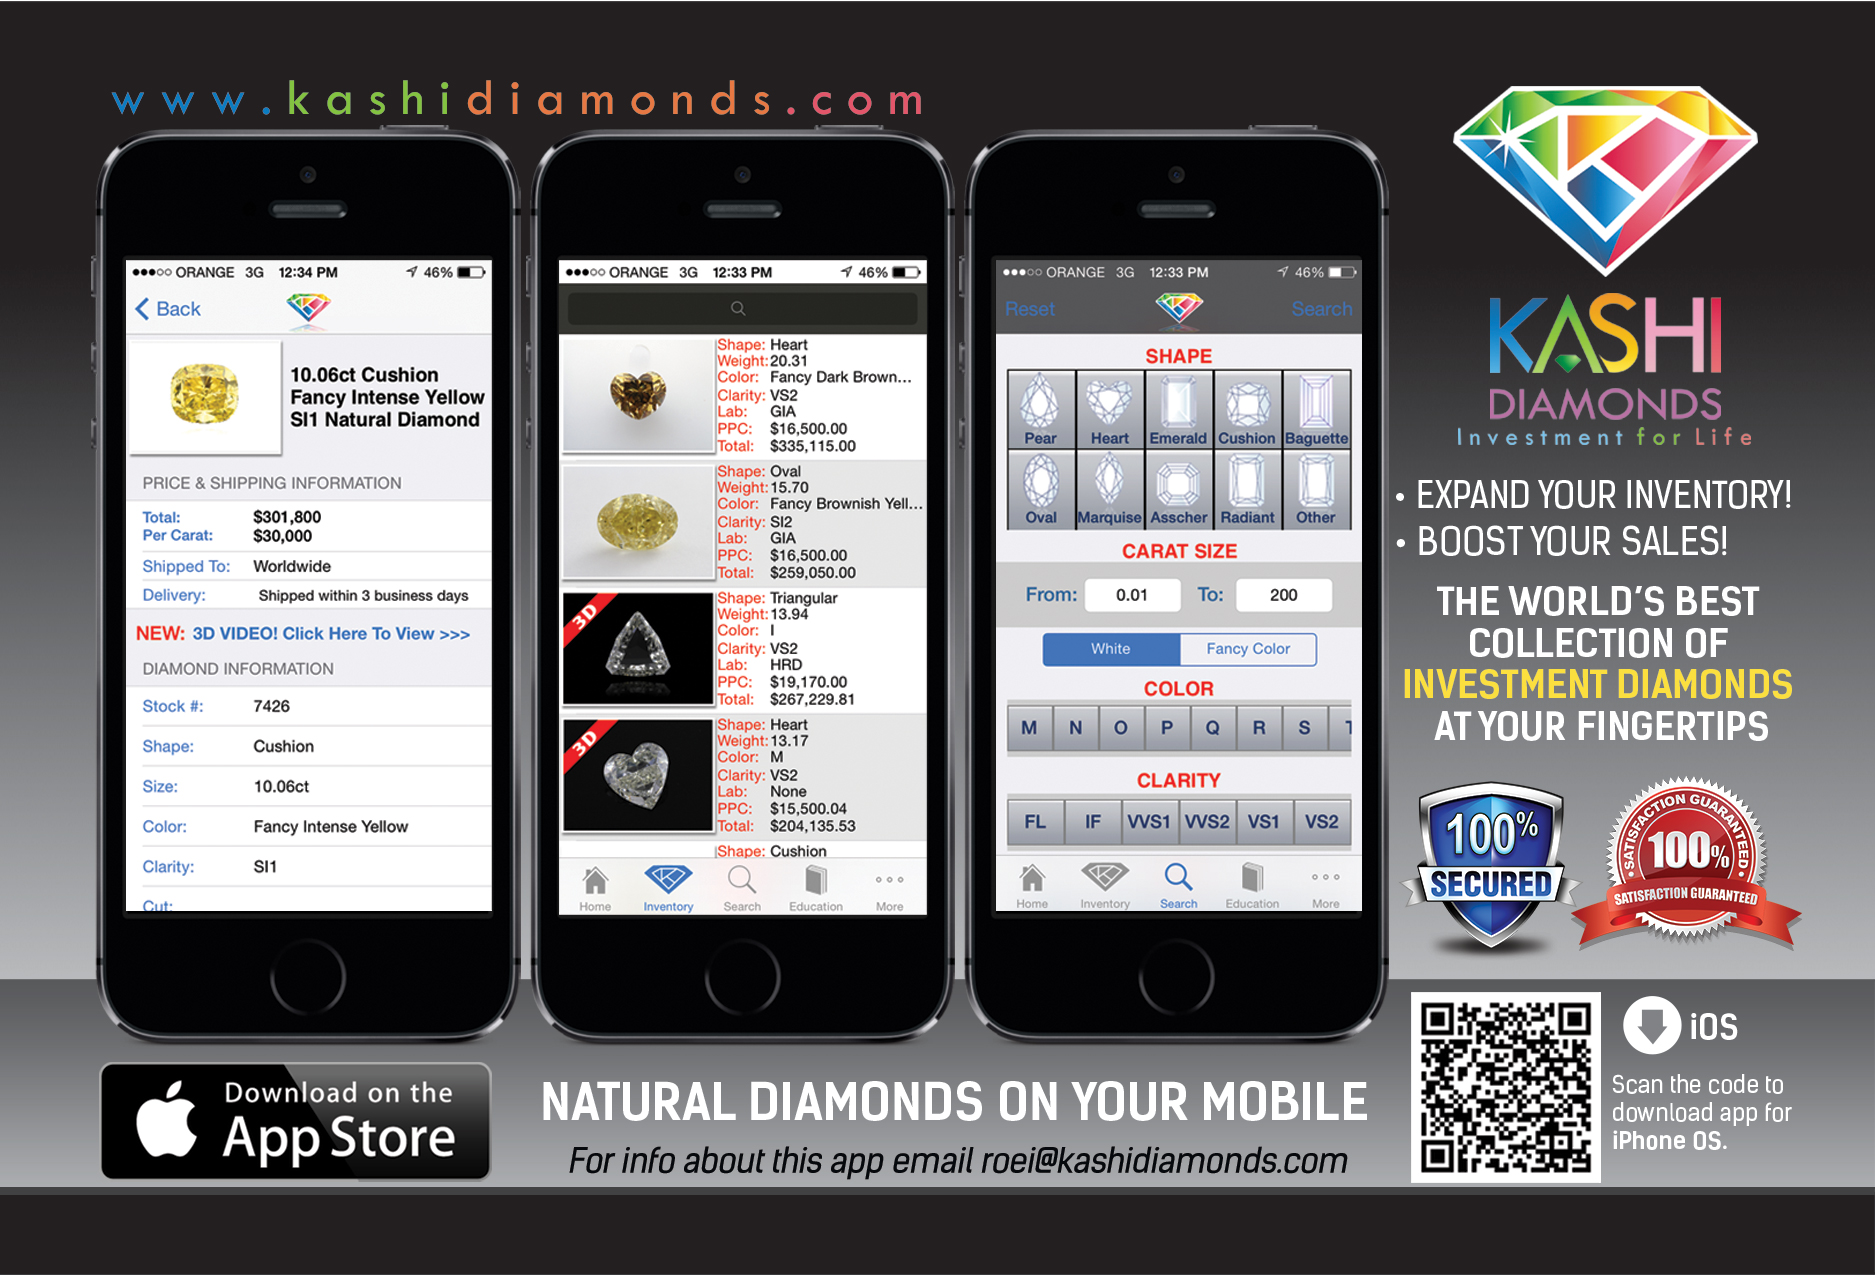 Kashi Diamonds iPhone Application Screenshots